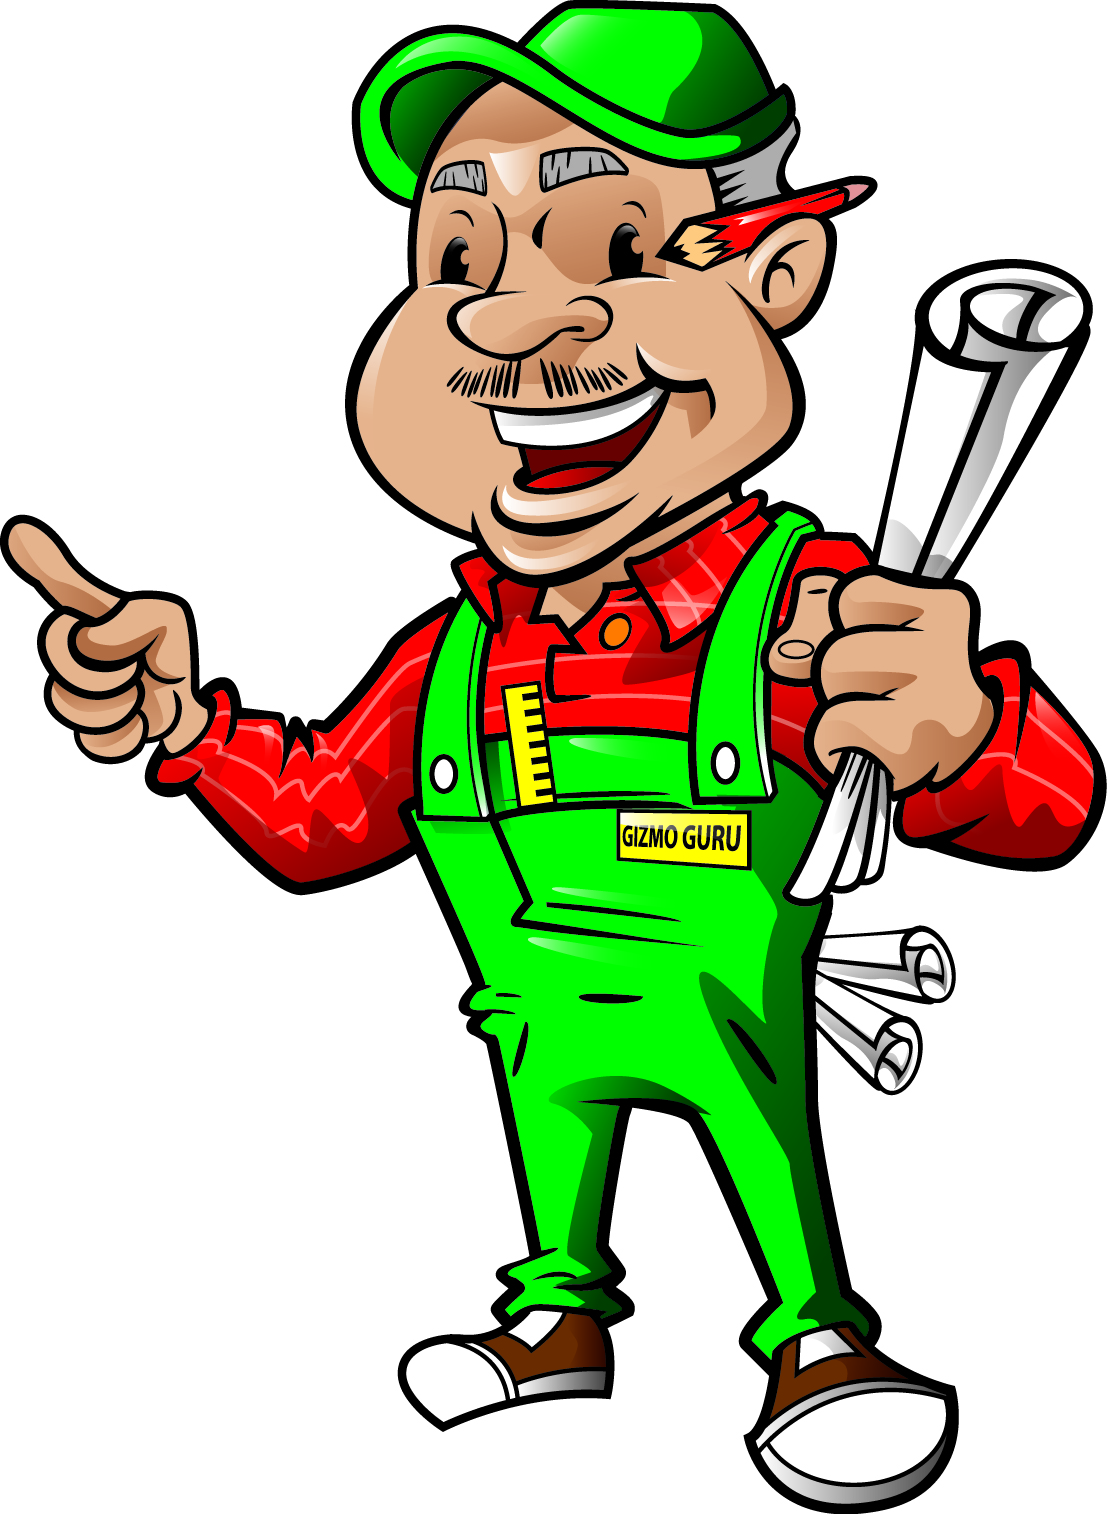 Wood Work Builder Mascot